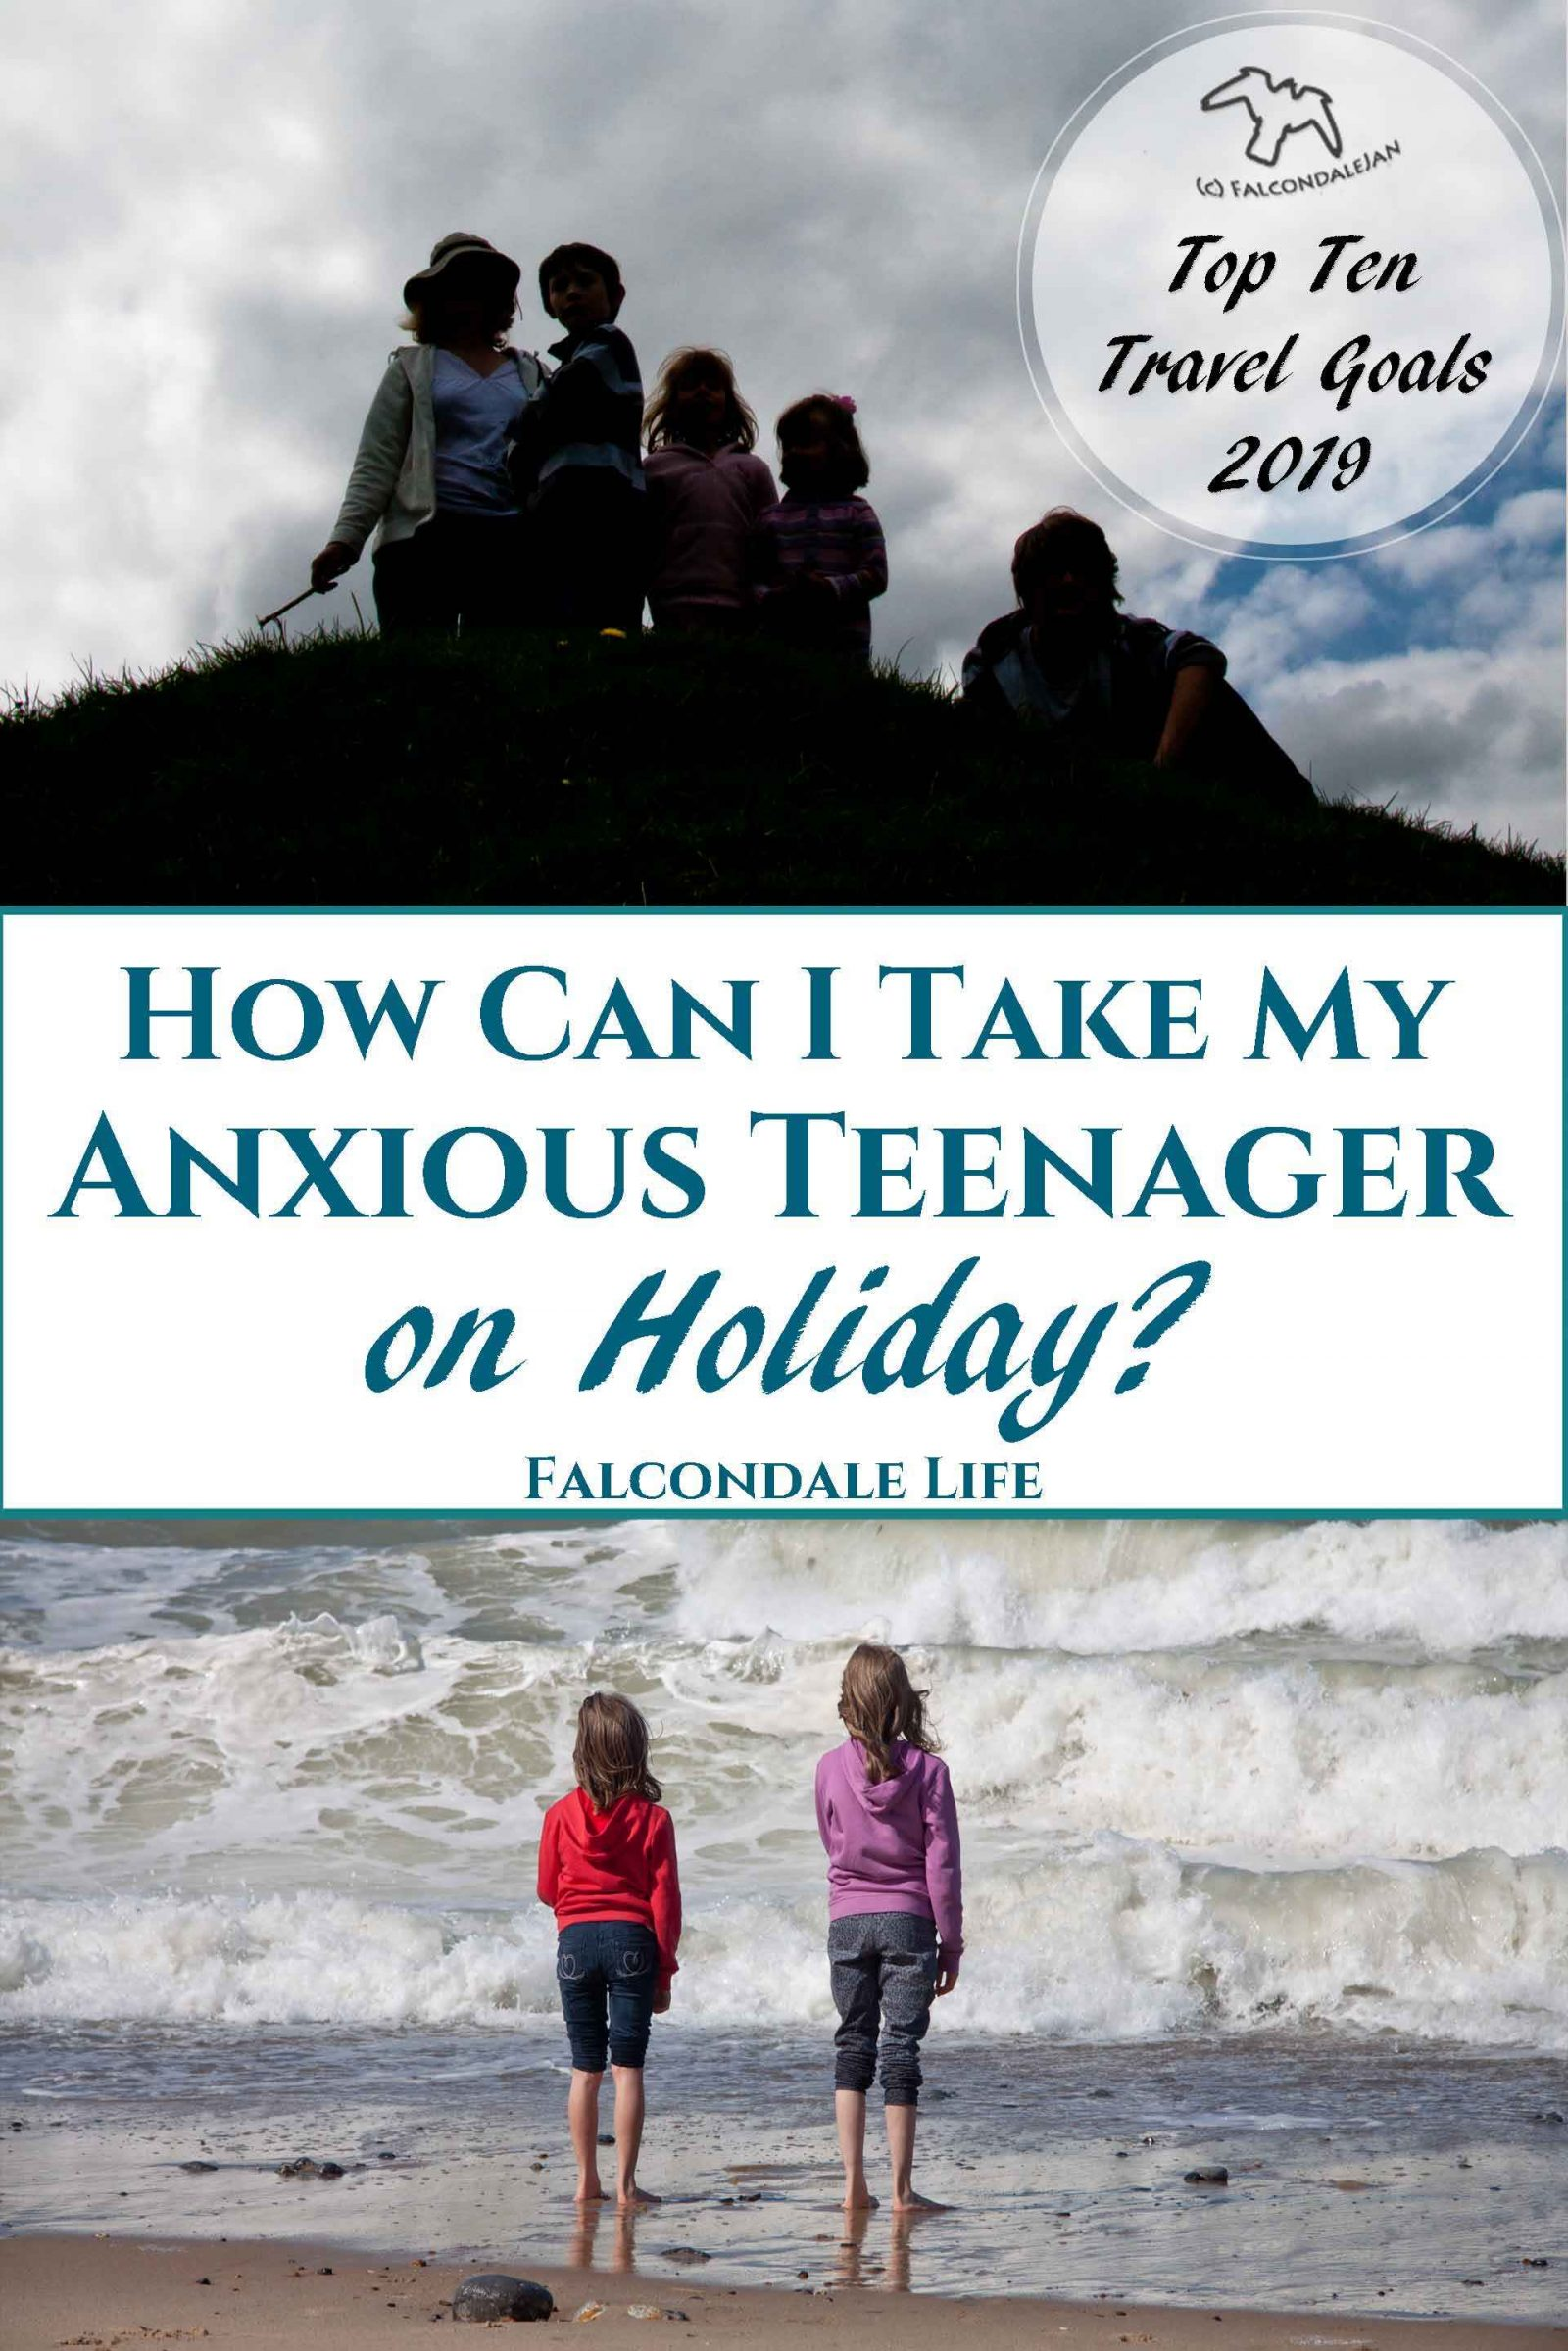 Ideas and tips for a vacation that's suitable for sensitive people. Where could we take an anxious teenager or child on holiday? Plan calmer family travel. Ideas to take a mentally ill person on a family holiday. Image description: Family in silhouette on a hill, and 2 girls in hoodies stare out at waves on the sea plus blog title.